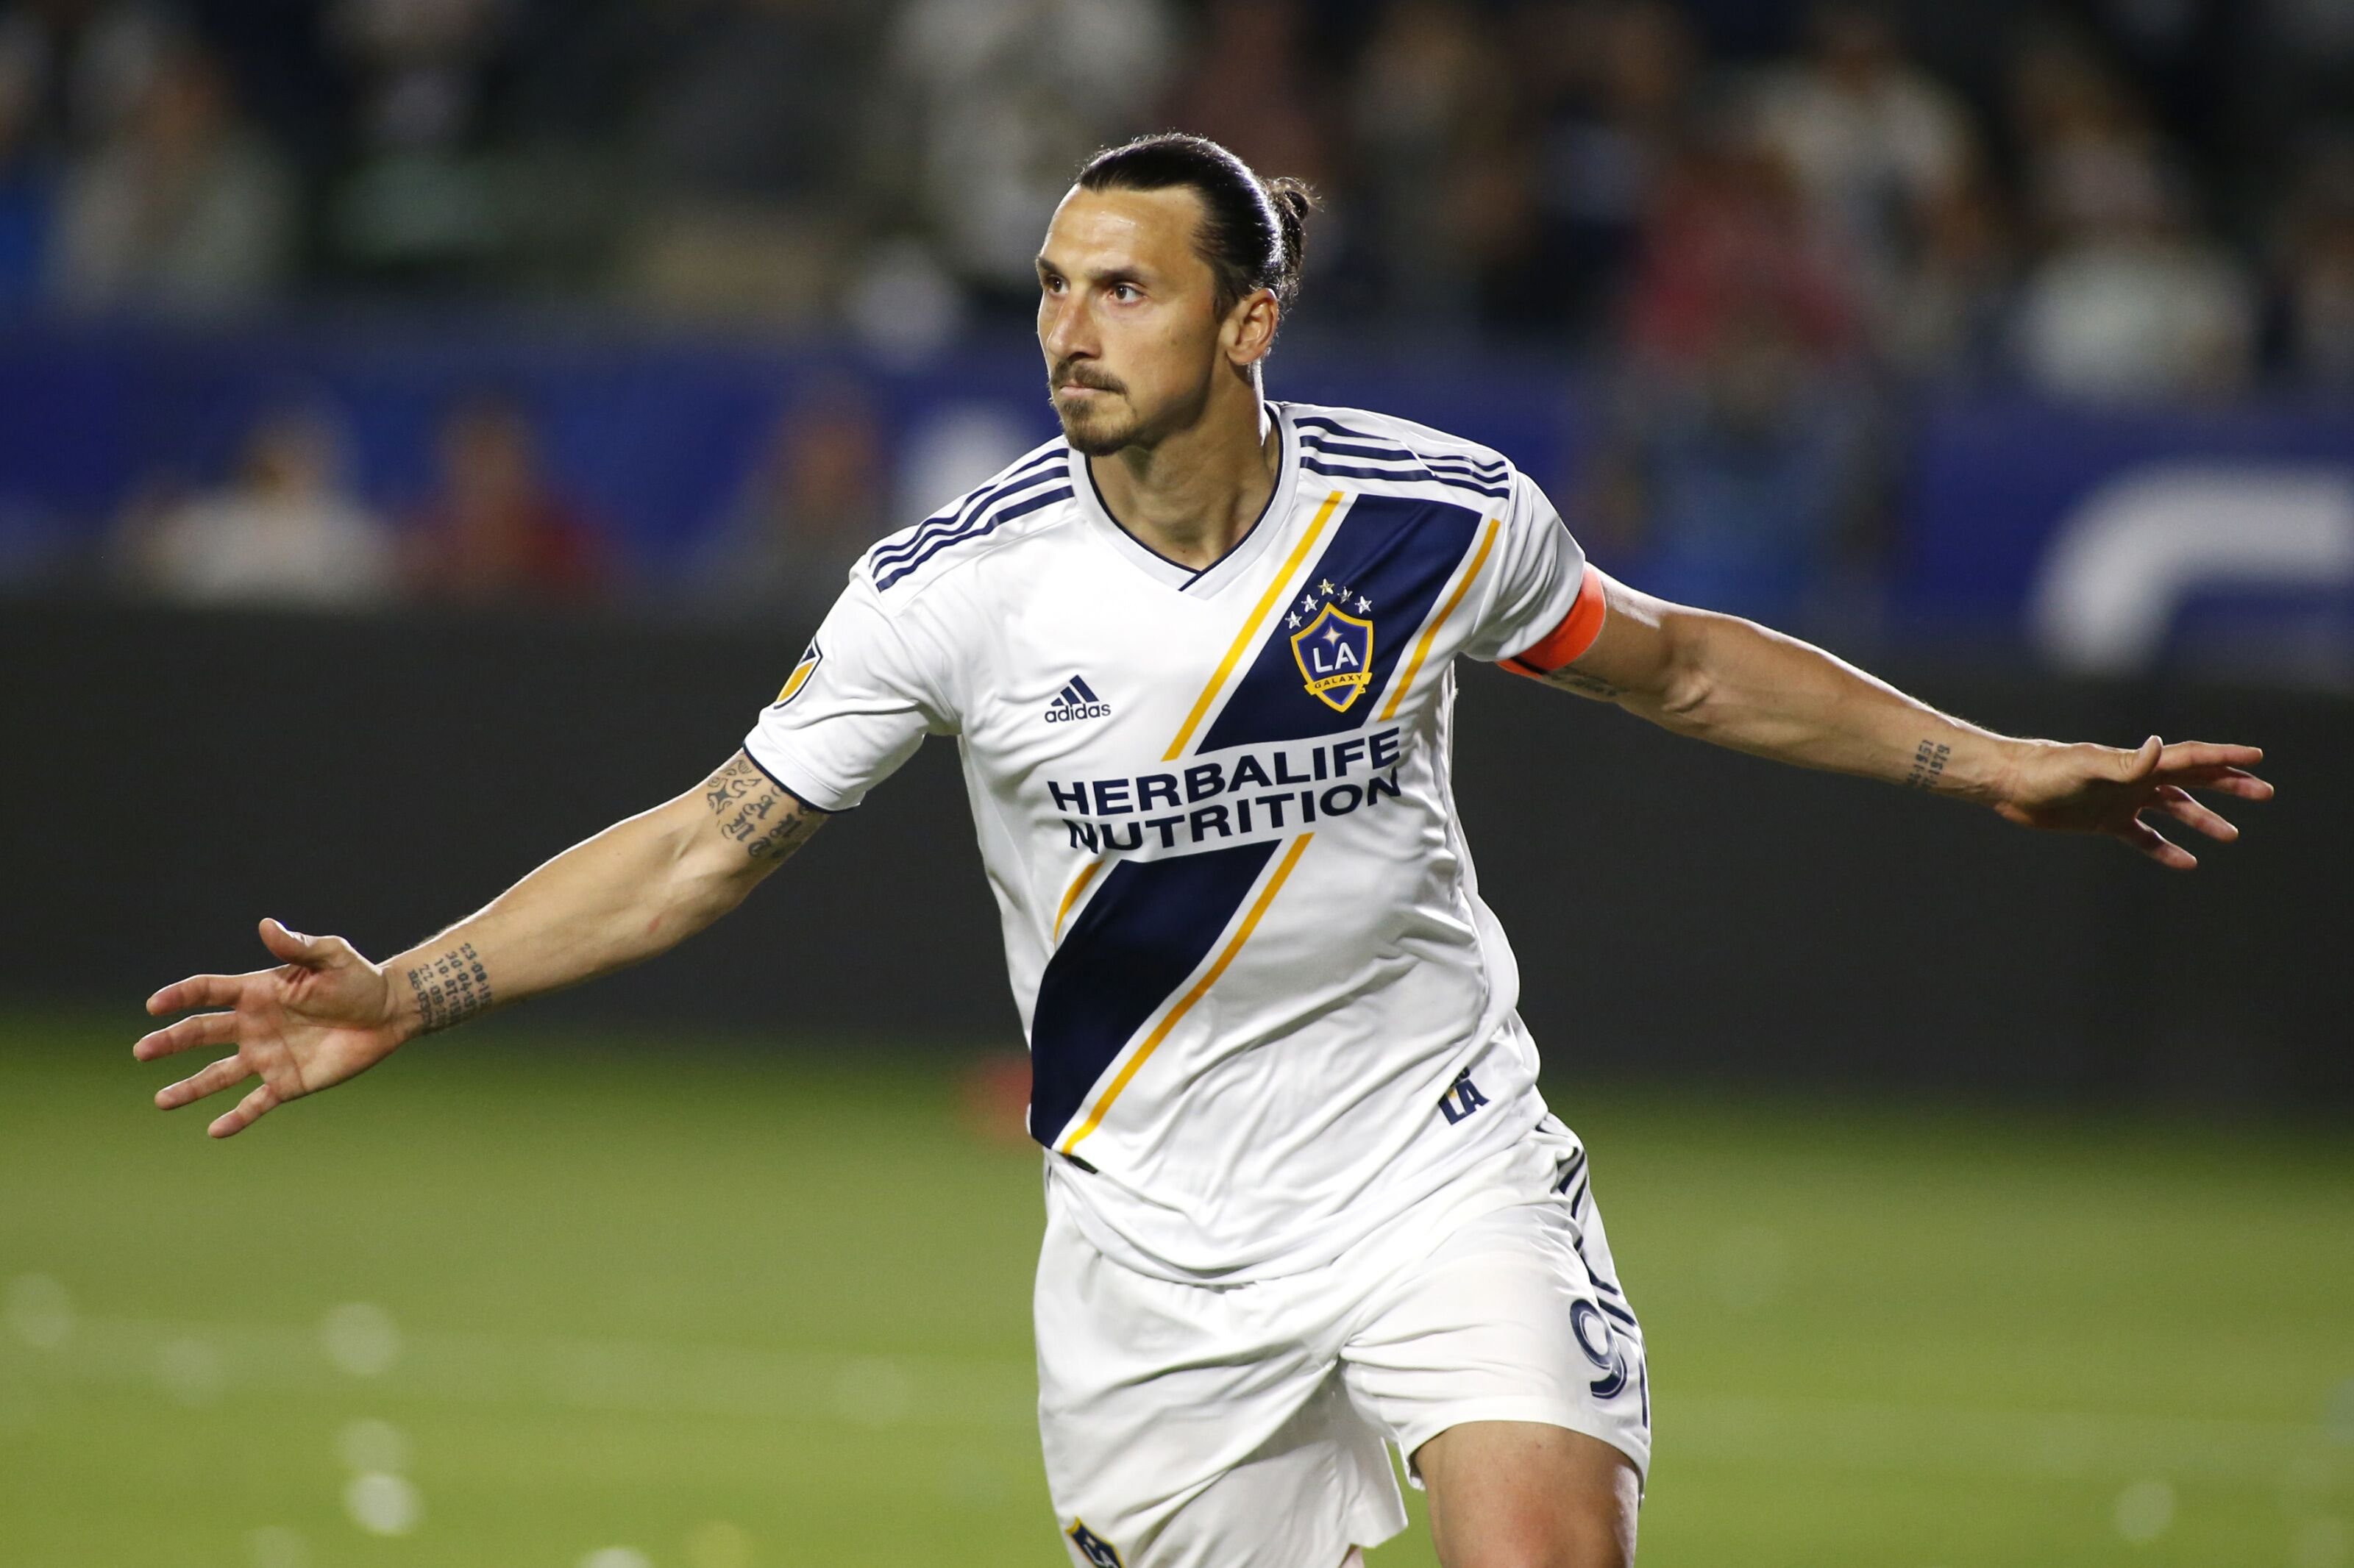 brand new 3bfaa 44aa0 LA Galaxy Vs LAFC: The greatness of Zlatan Ibrahimovic